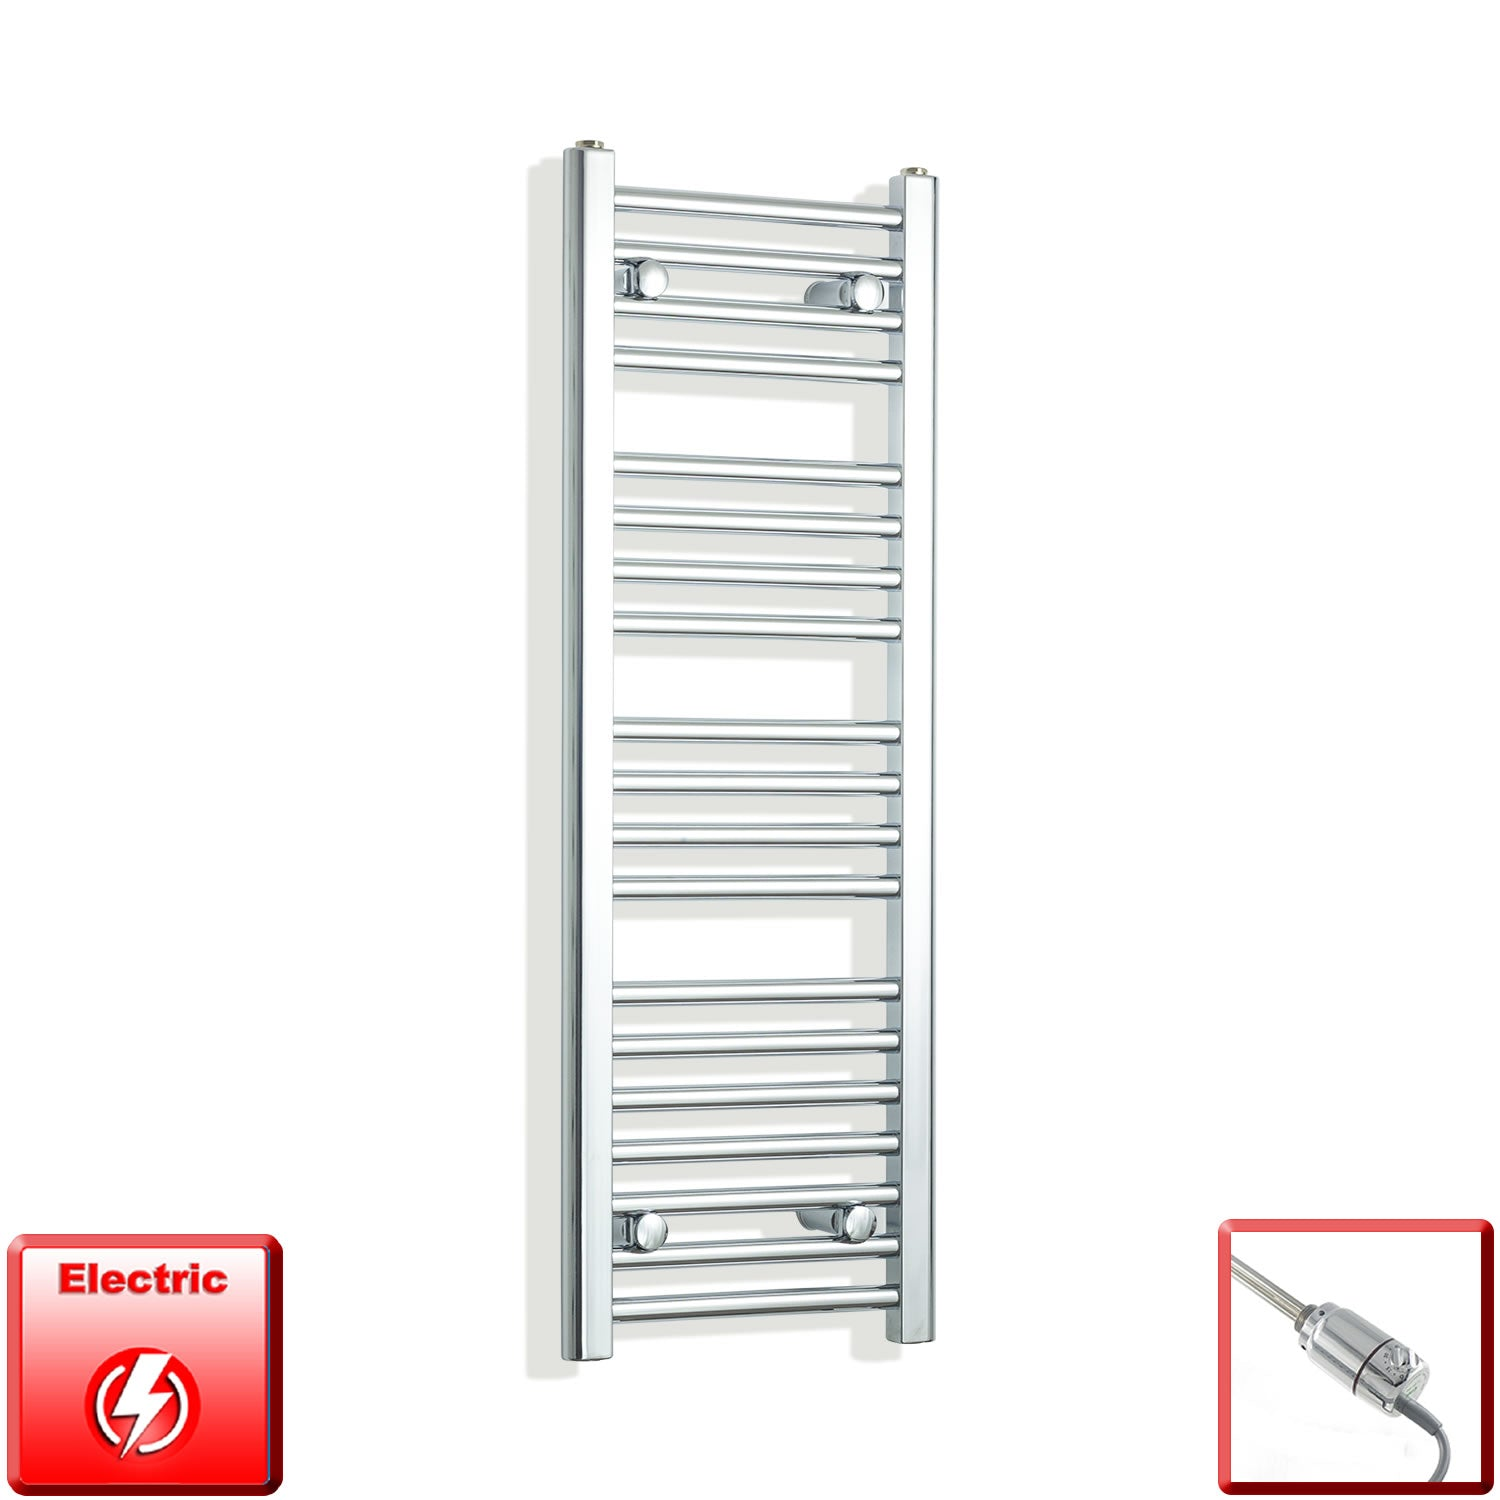 350mm Wide 1000mm High Pre-Filled Chrome Electric Towel Rail Radiator With Thermostatic GT Element